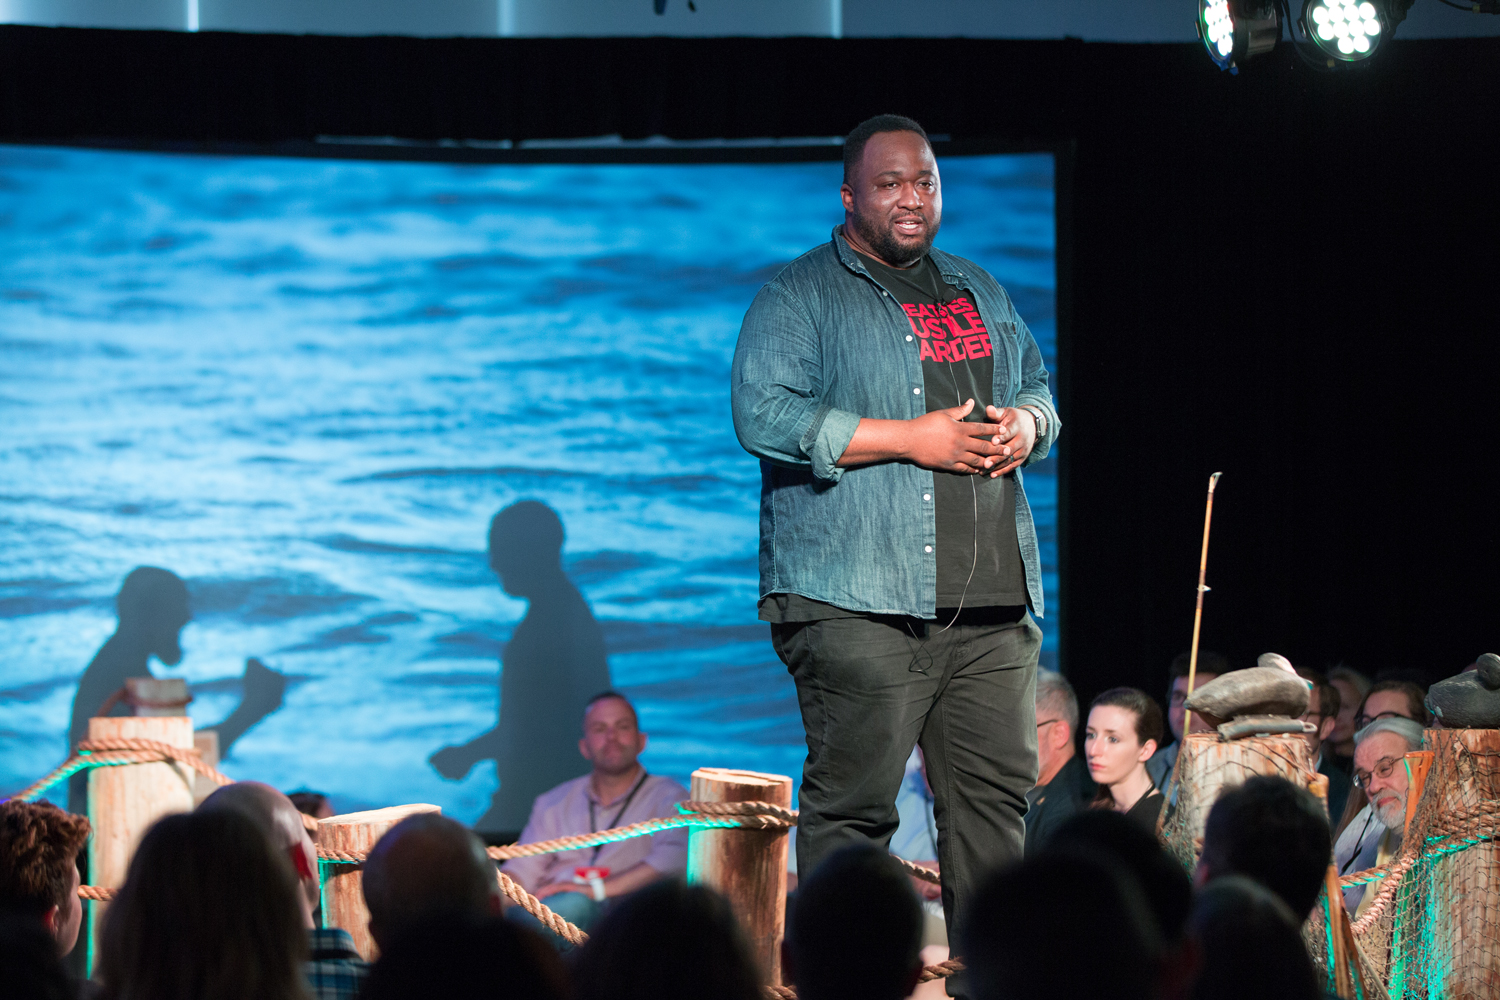 Entrepreneur Marshall L. Shorts, Jr. shares his story at Startup Storytellers No. 5: The Leap. Photo by  Shannon Williams Photography